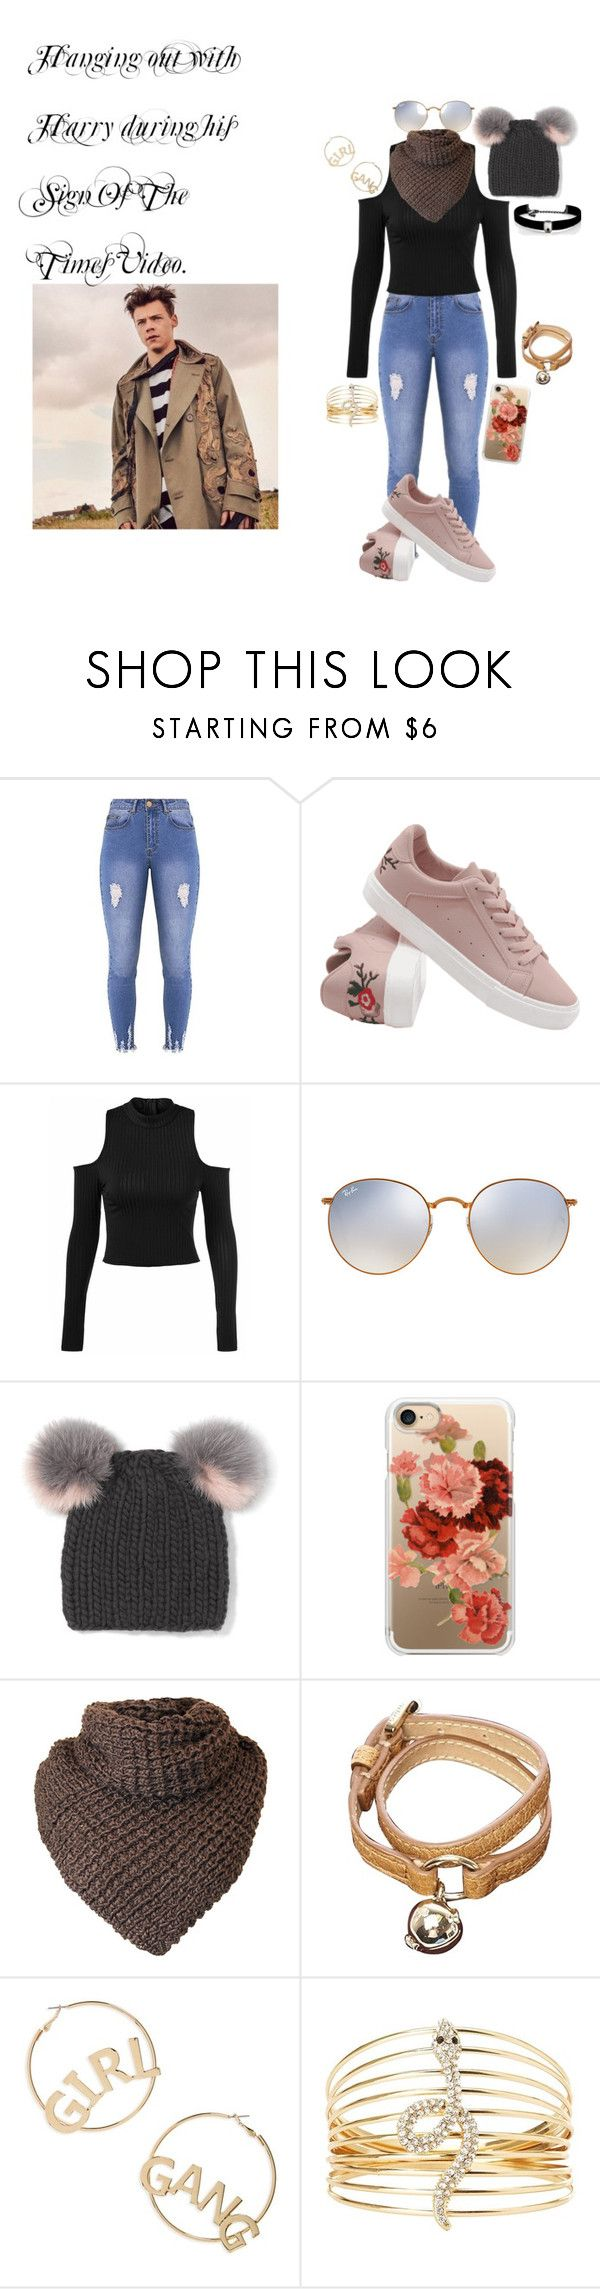 """""""Hanging Out with Harry during his Sign Of The Times Video."""" by emmalea21 ❤ liked on Polyvore featuring Lipsy, Ray-Ban, Eugenia Kim, Casetify, Mulberry, BP., Charlotte Russe and Kenneth Jay Lane"""